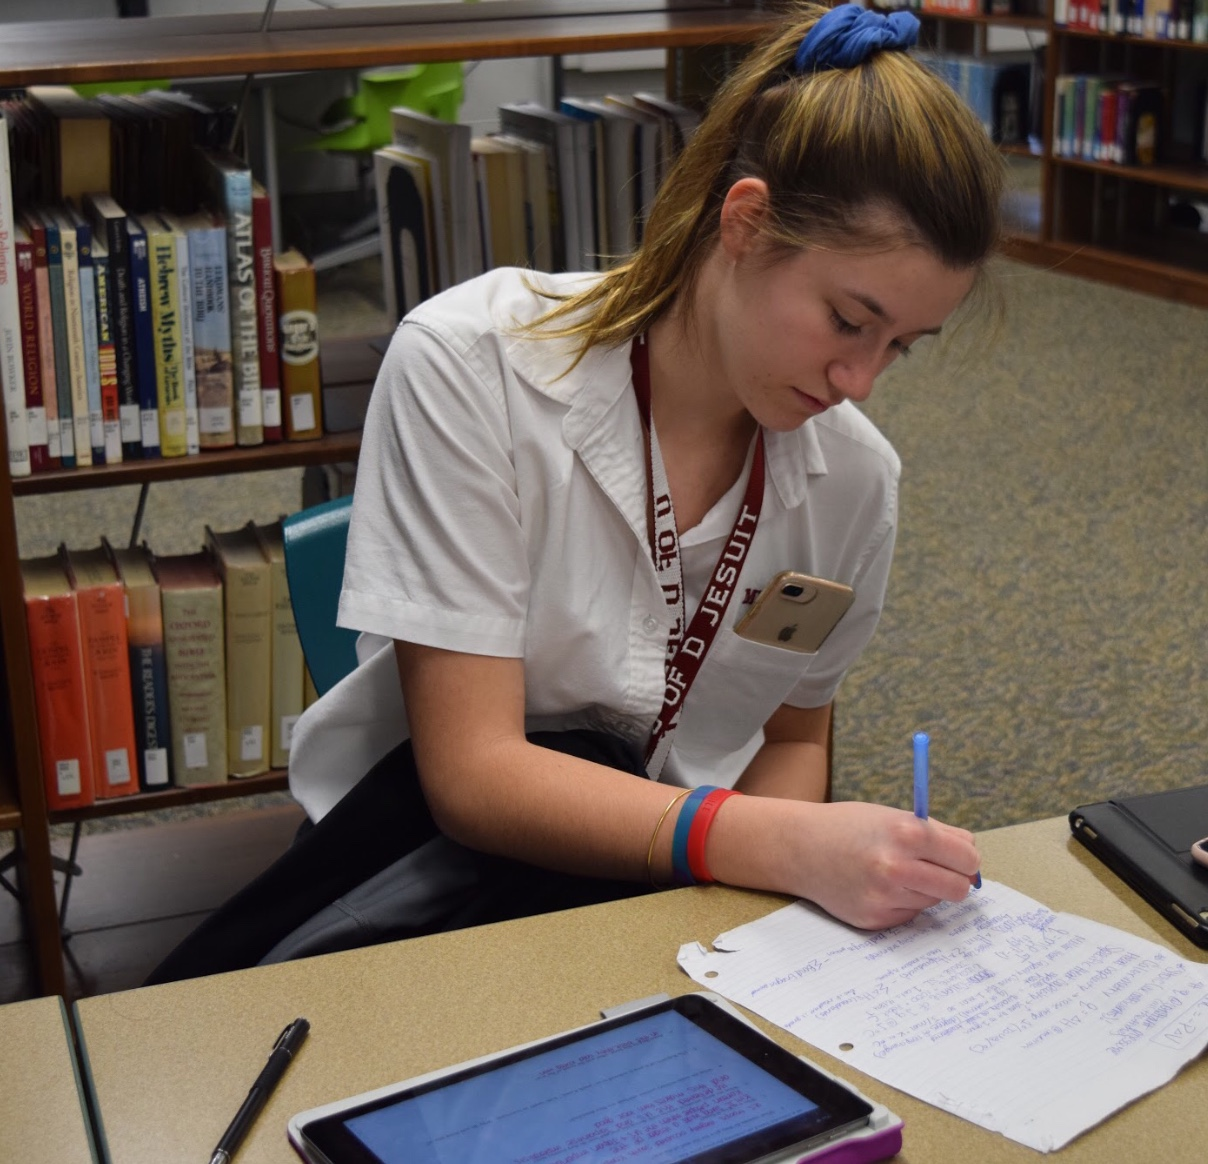 Junior Kayla Shields works hard on her schoolwork while preparing for her final exams that will be approaching at the end of May, hoping to keep her A's in her classes.  Photo by Bella Aprilliano